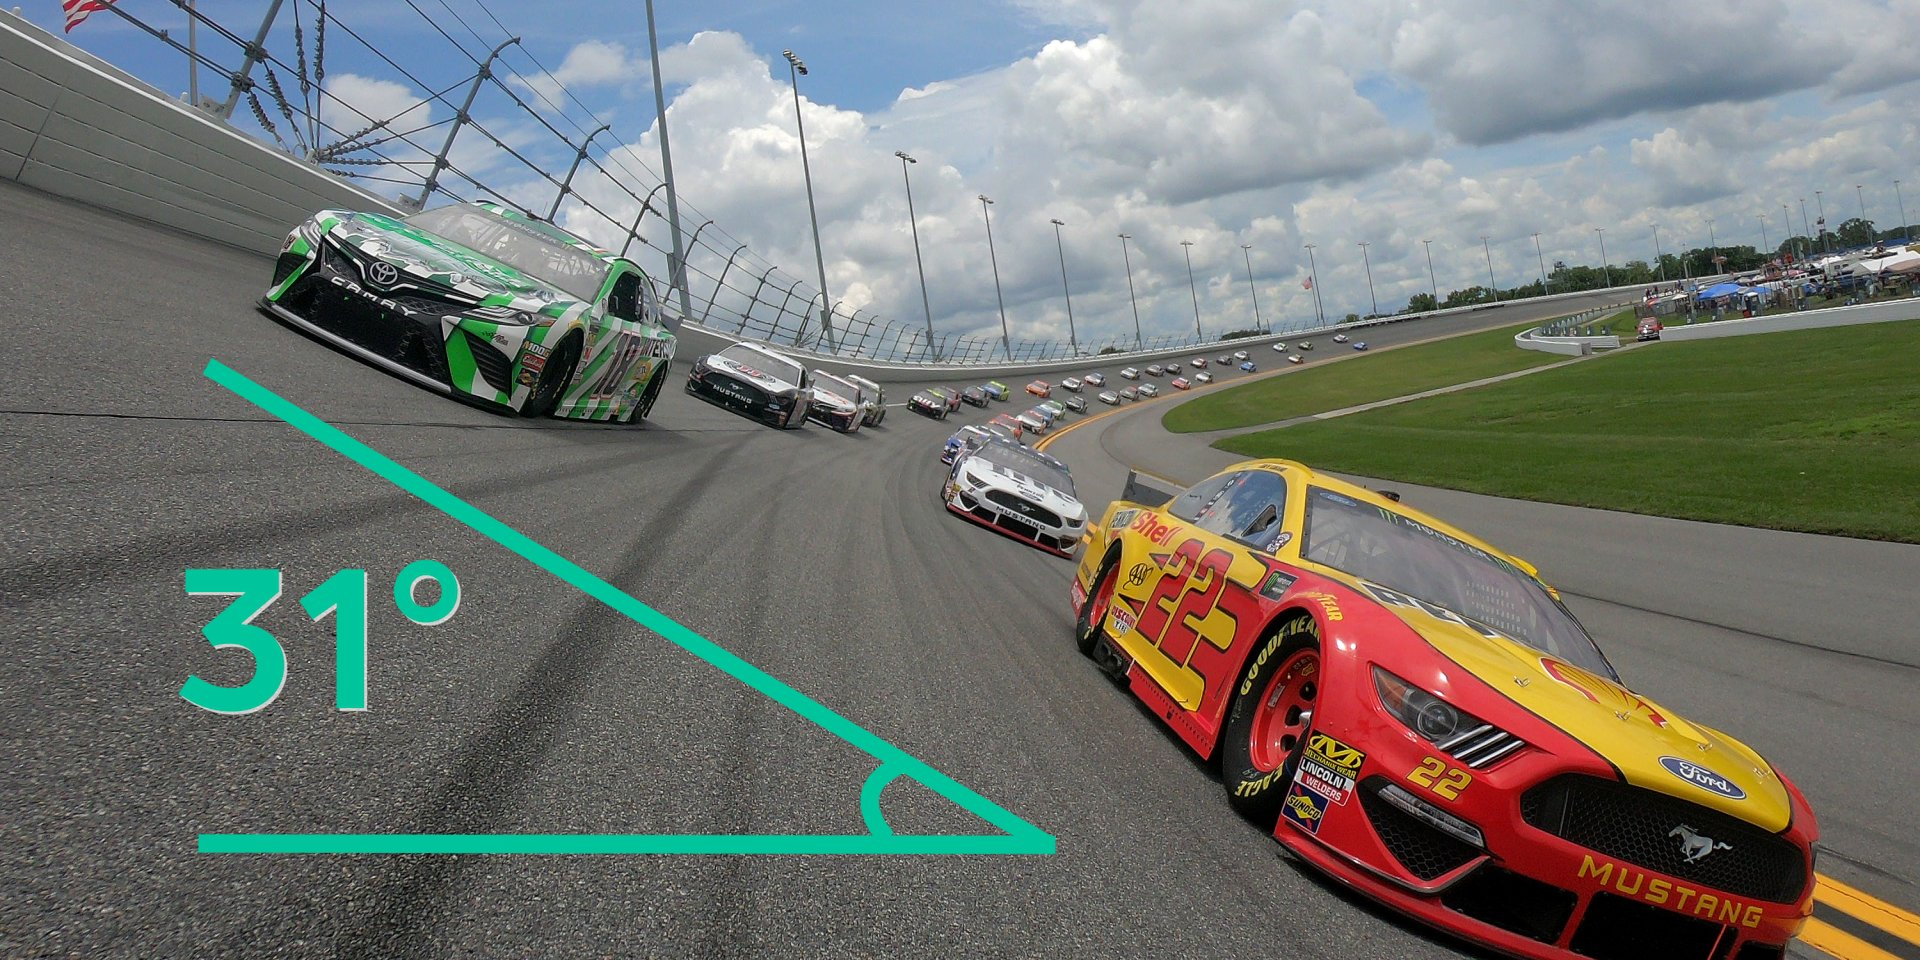 How NASCAR's banked turns help cars go faster – Business Insider